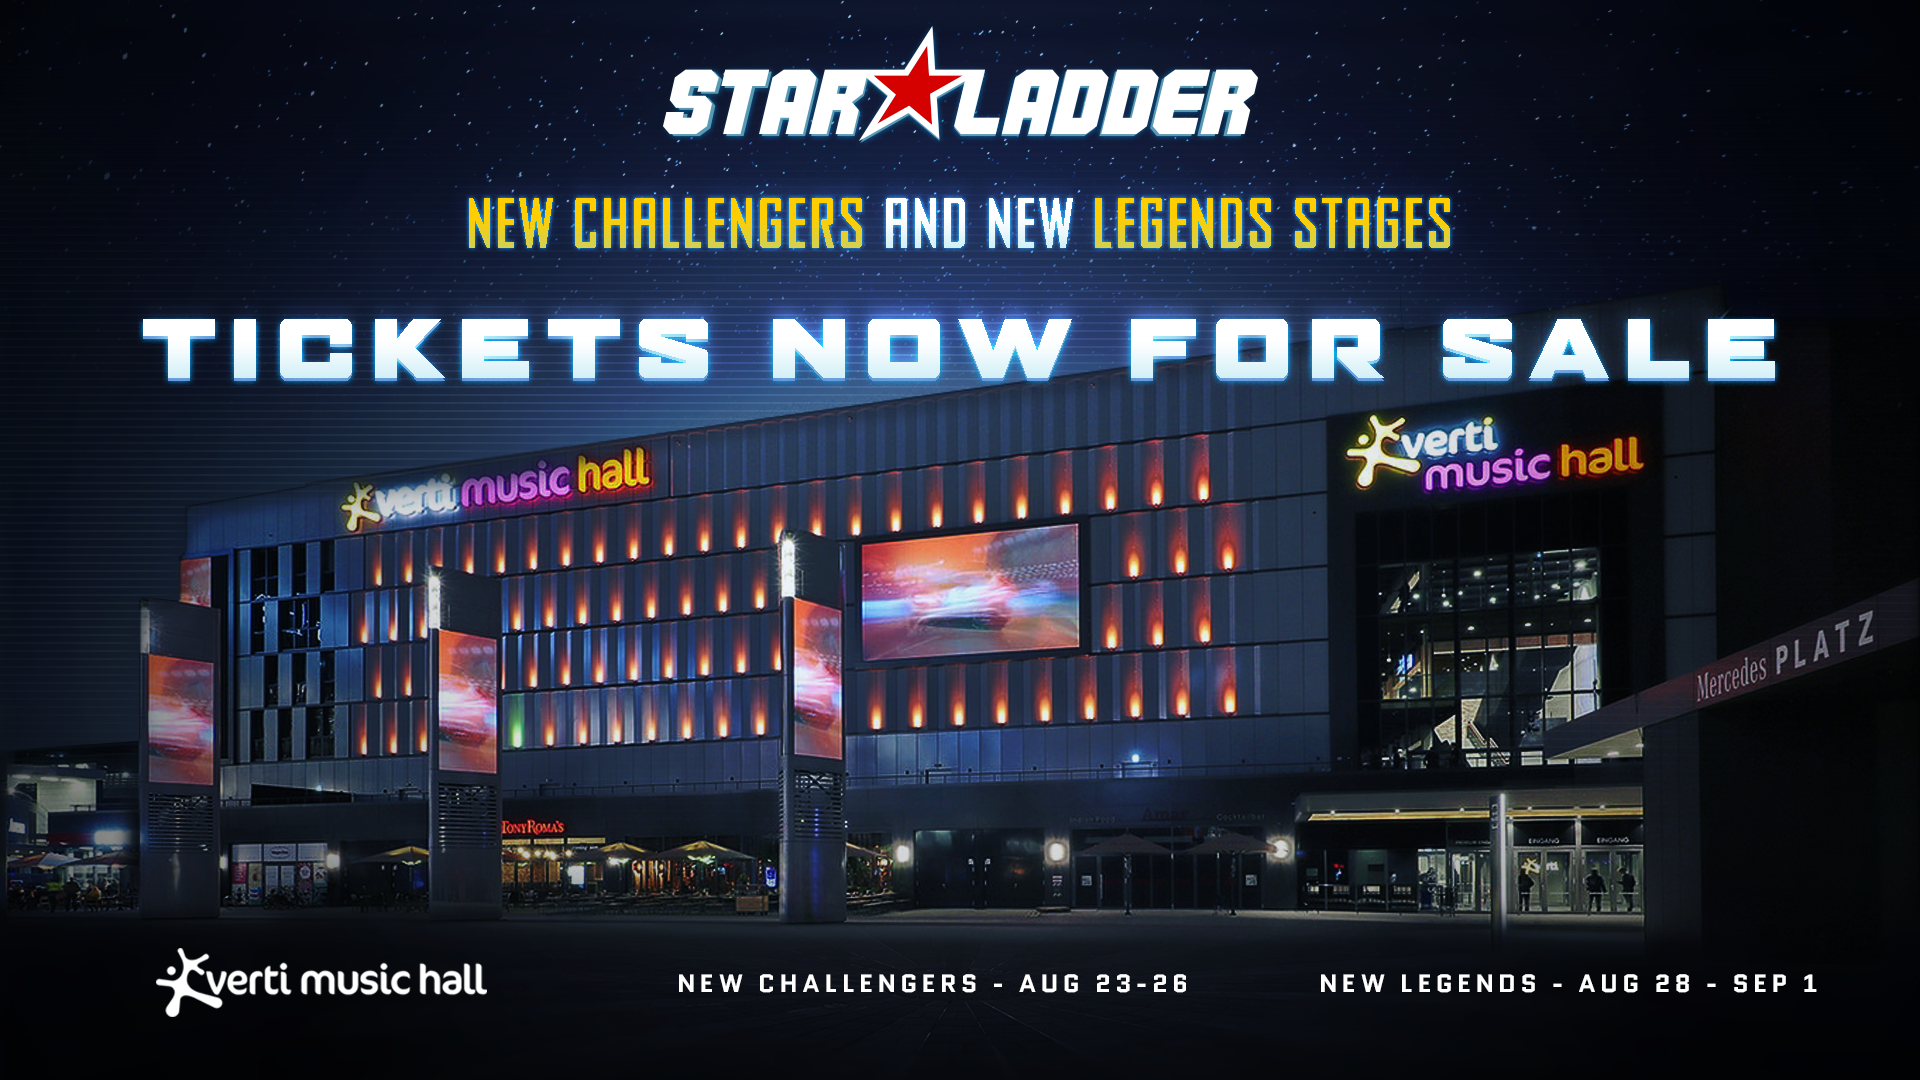 Get your tickets for New Challengers and New Legends stages